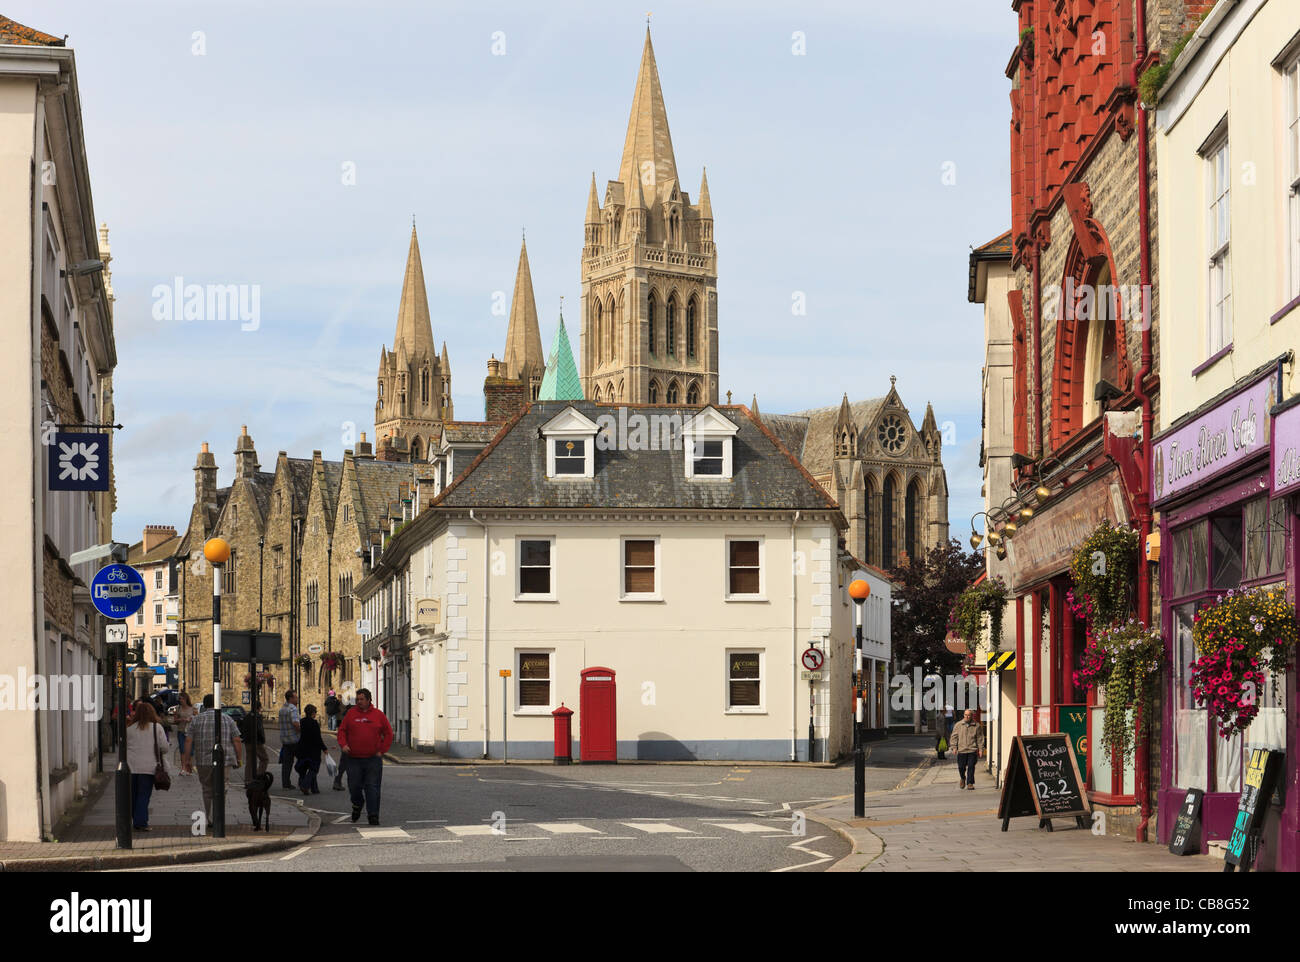 Street scene and view to Truro cathedral with three spires. Quay Street, Truro, Cornwall, England, UK, Britain. - Stock Image